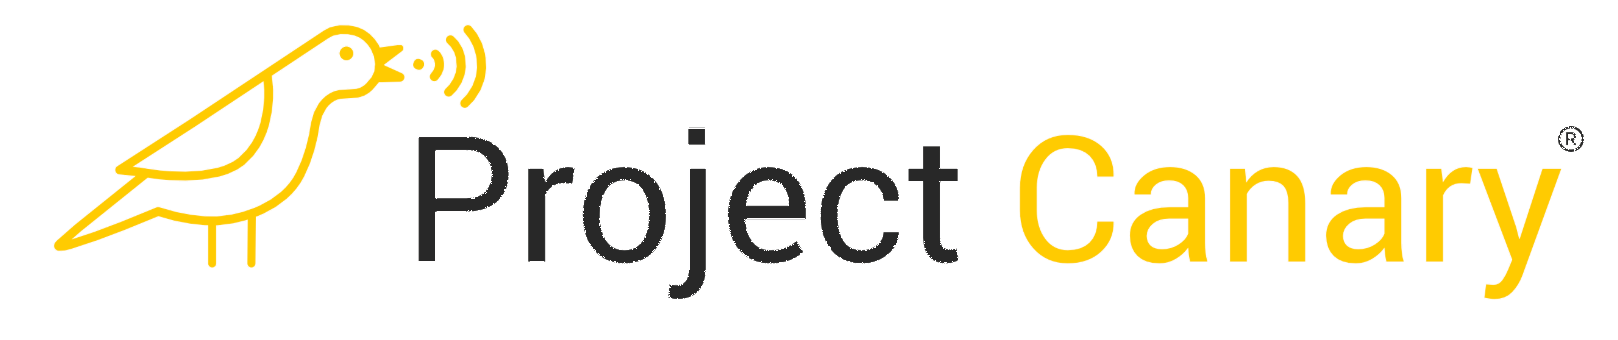 Project Canary